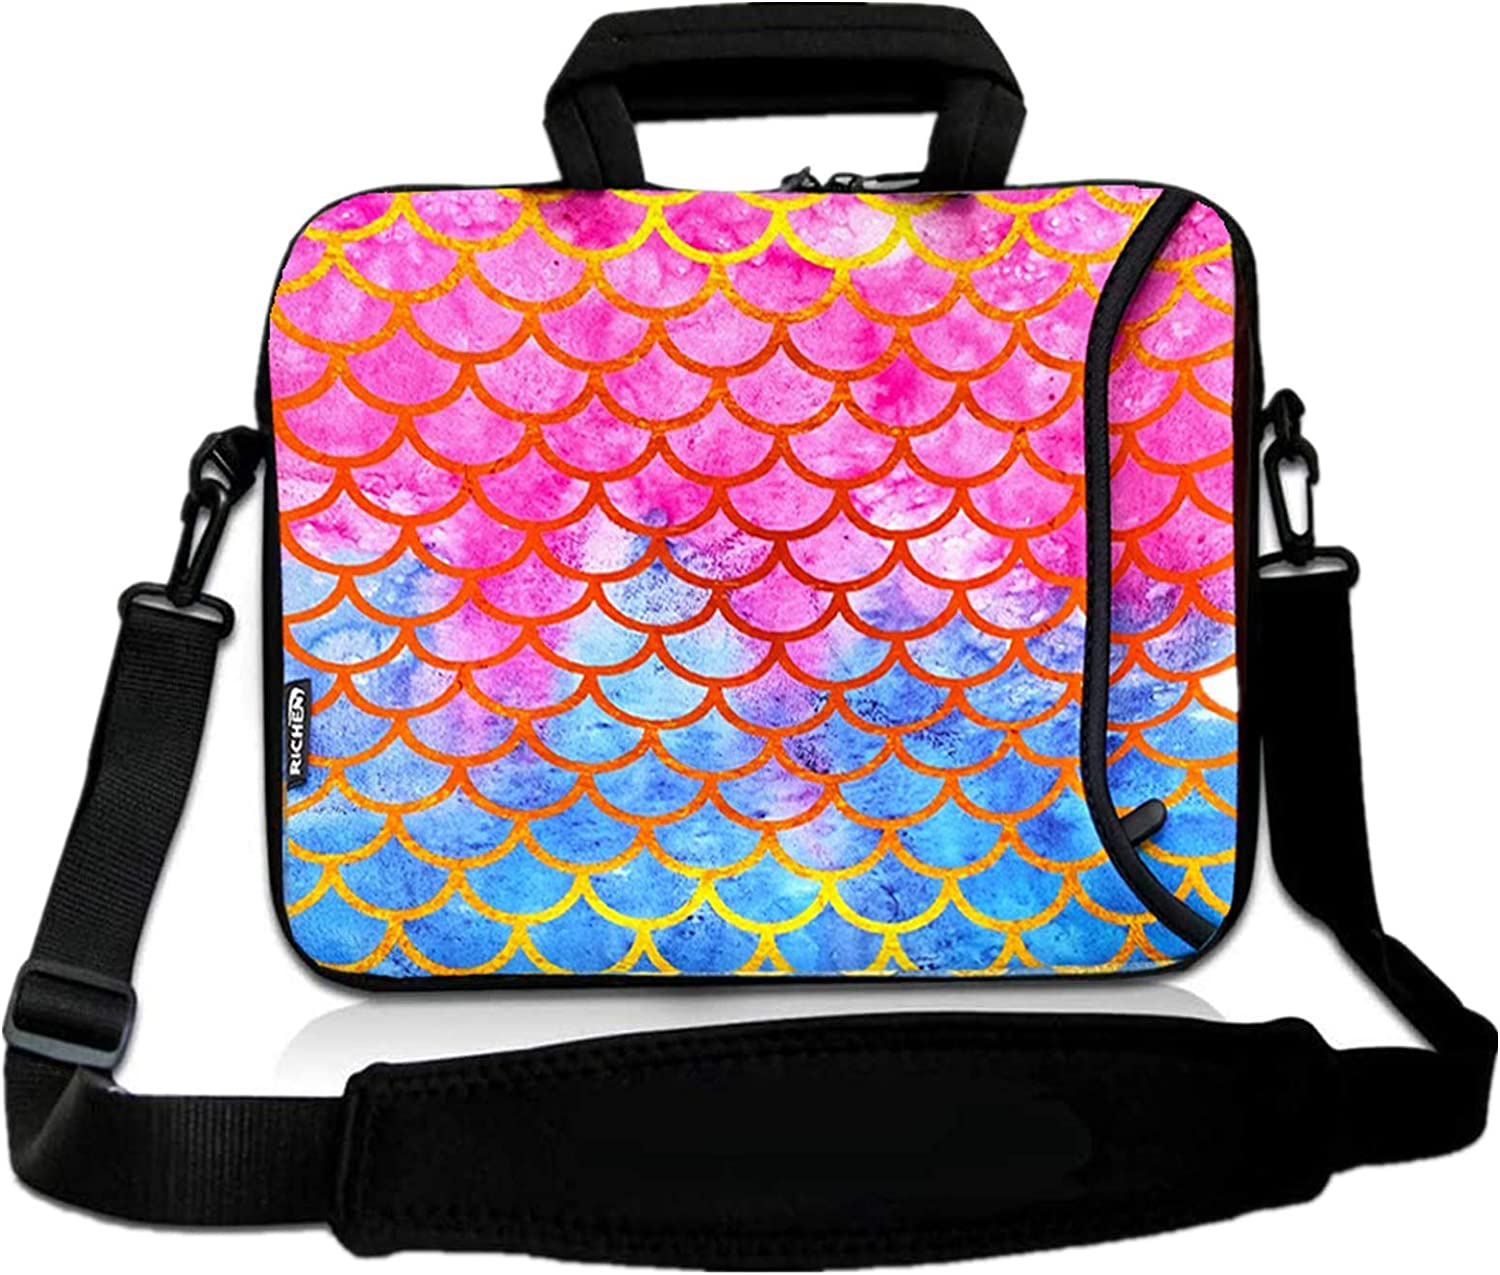 RICHEN Messenger Bag Carrying Case Sleeve with Handle Accessory Pocket Fits Laptops/Notebook/ebooks/Kids tablet/ipad